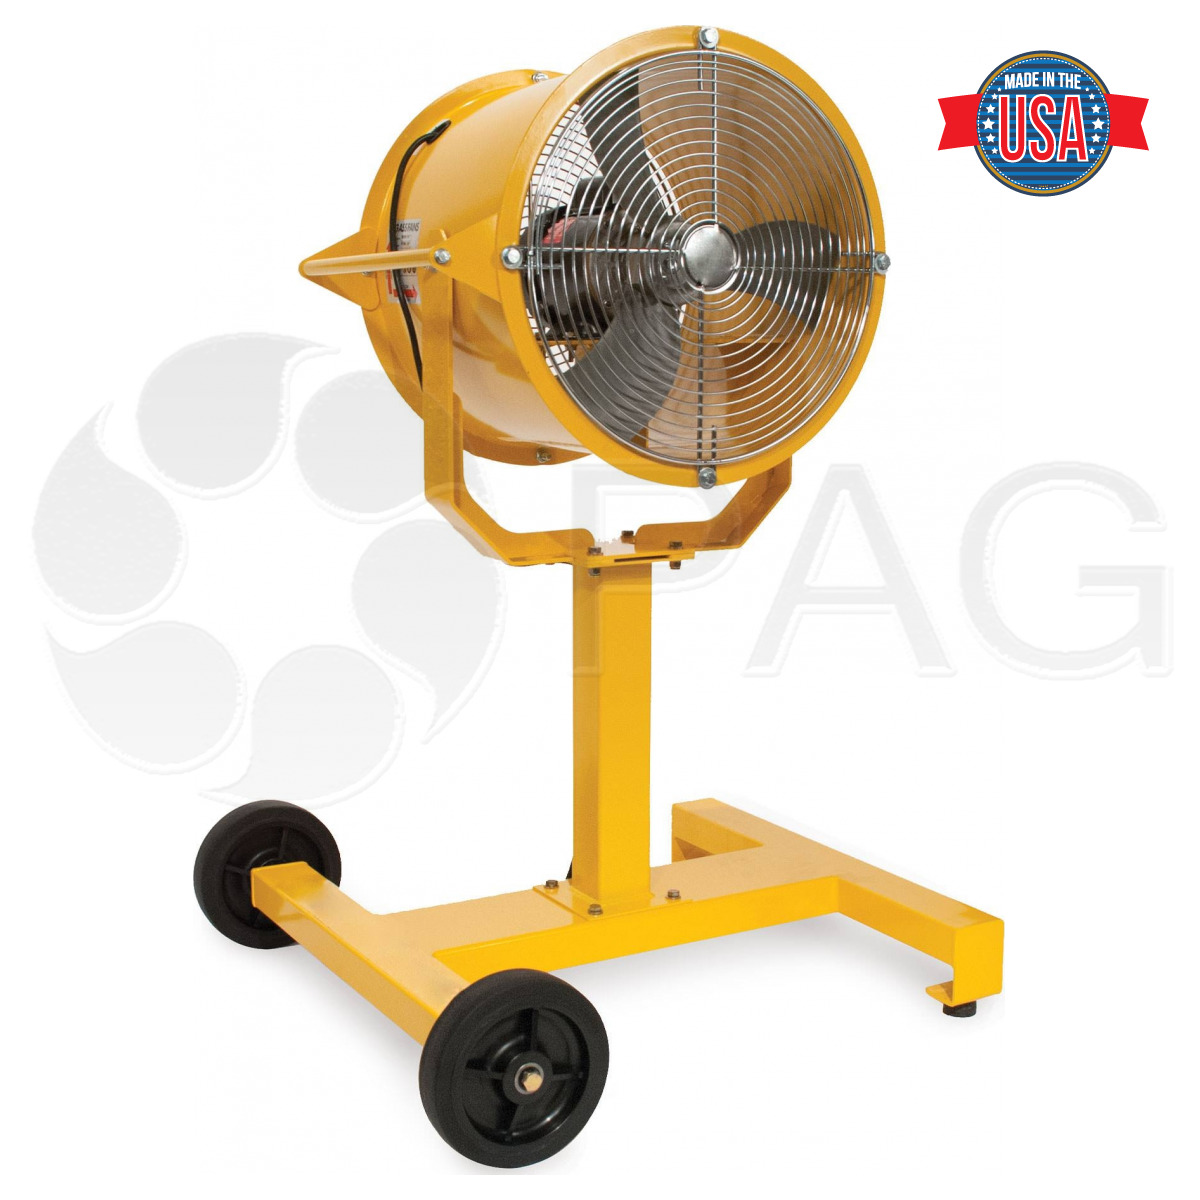 Big Ass Fans Sweat Bee portable 18-inch pedestal fan for indoor use